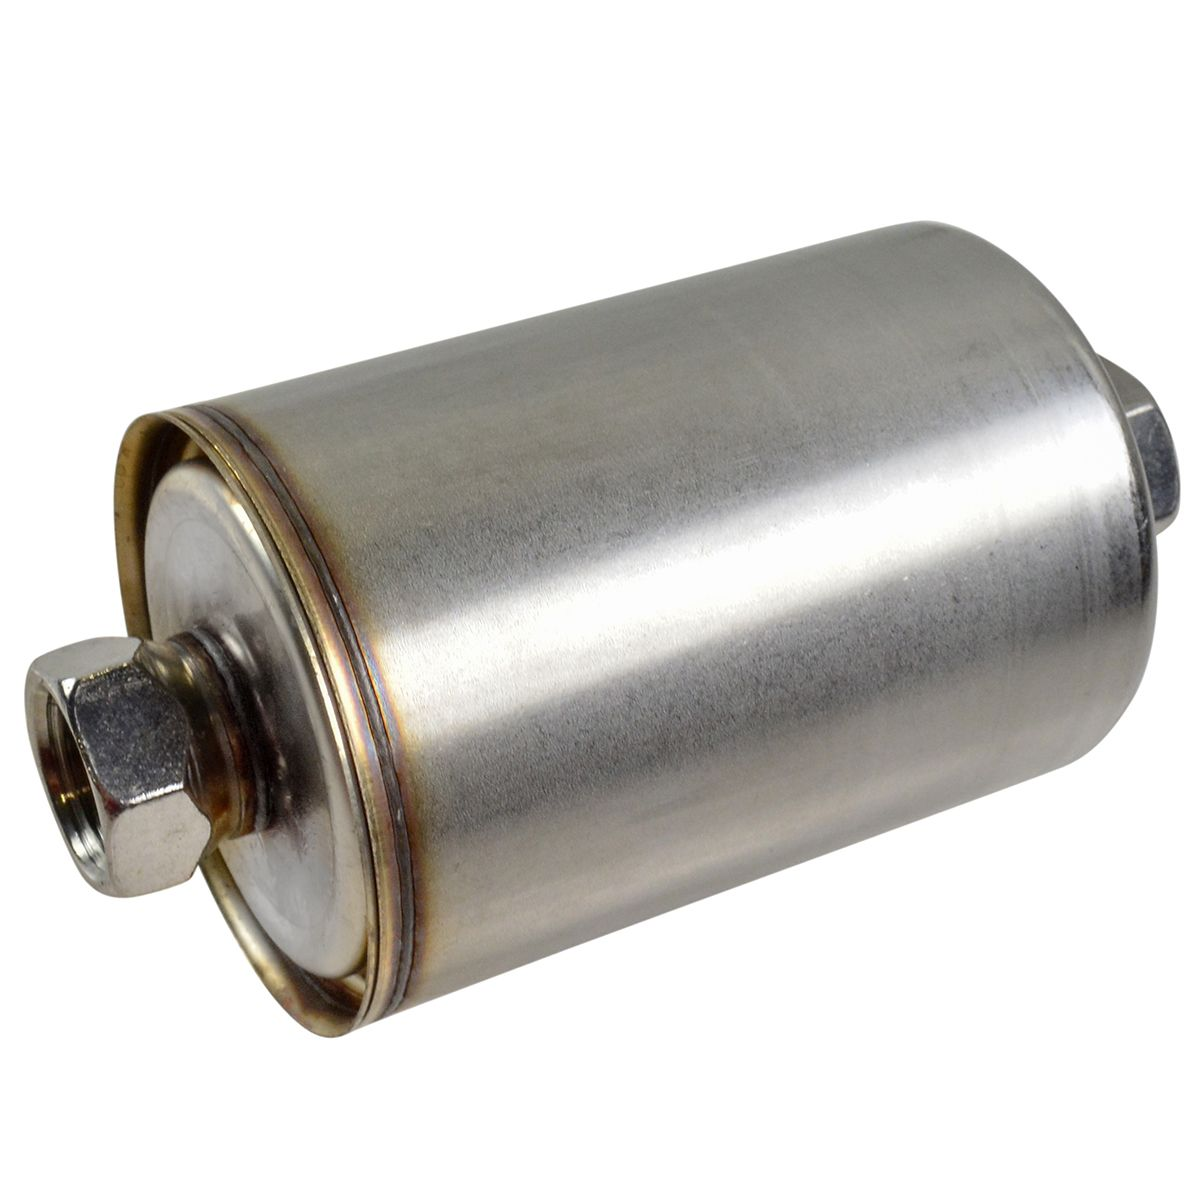 hight resolution of ac delco gf652f fuel filter for chevy gmc pontiac buick jaguar pontiac